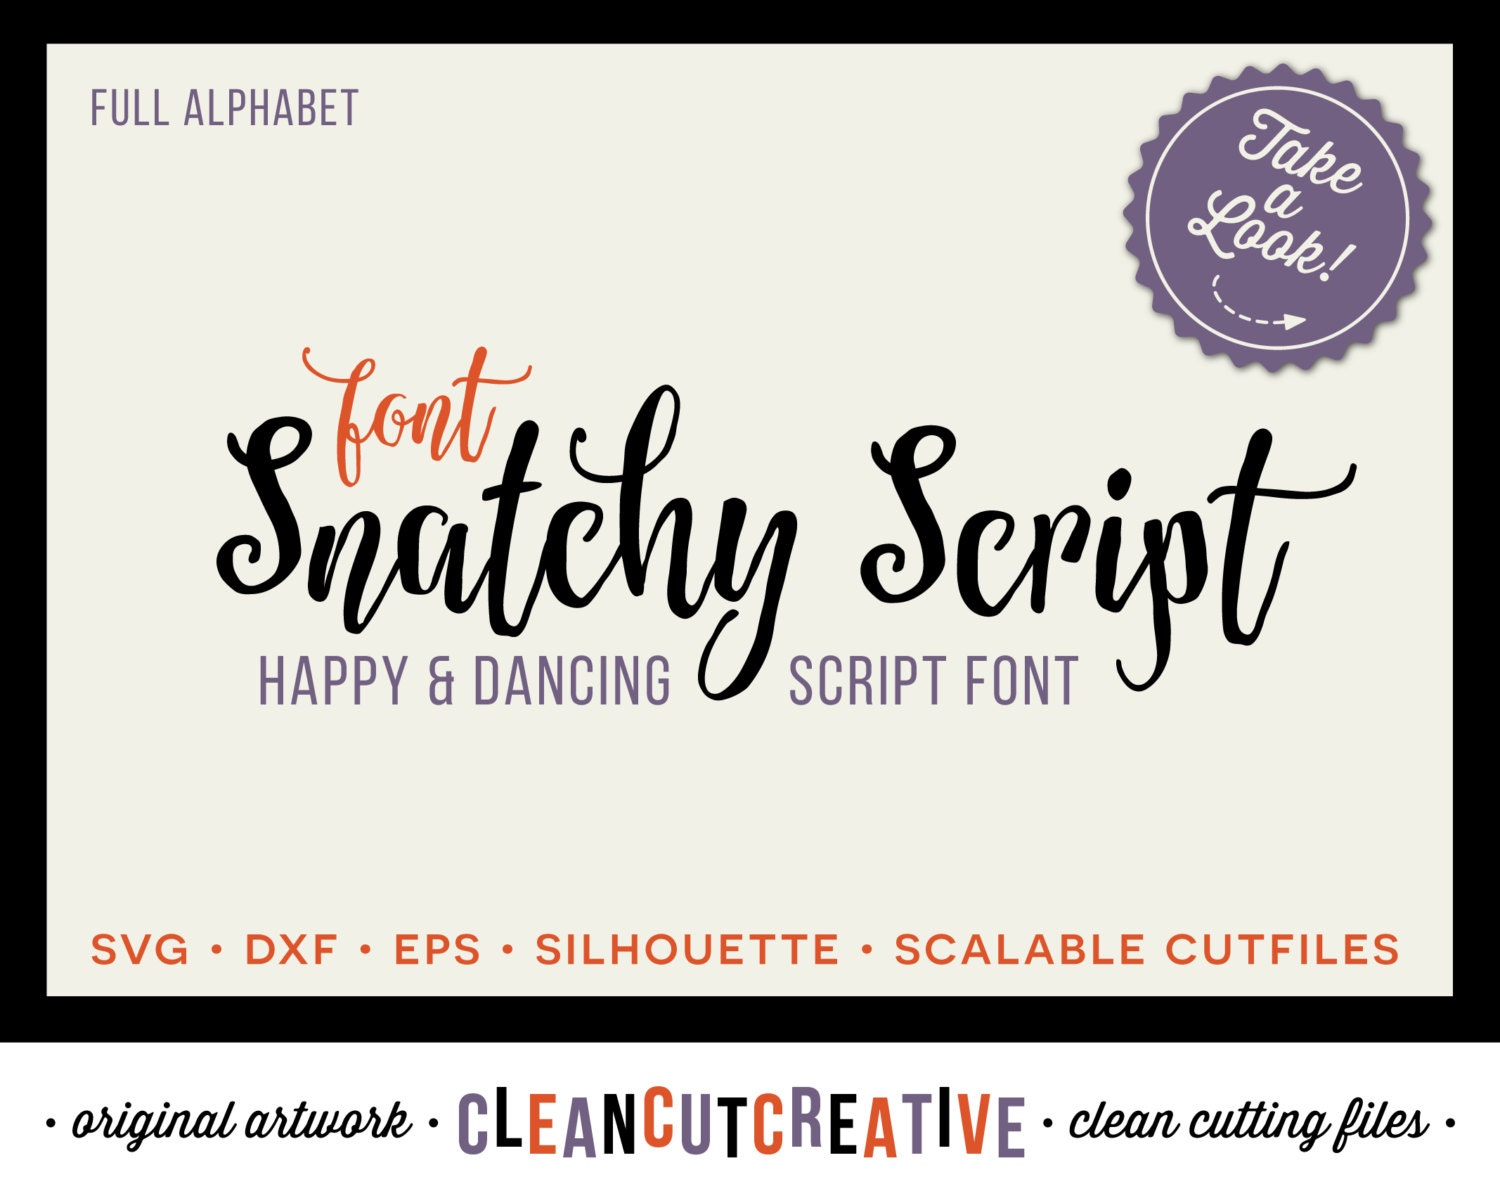 Download Full Alphabet SVG Fonts Cutfile Whimsy Modern Script cricut